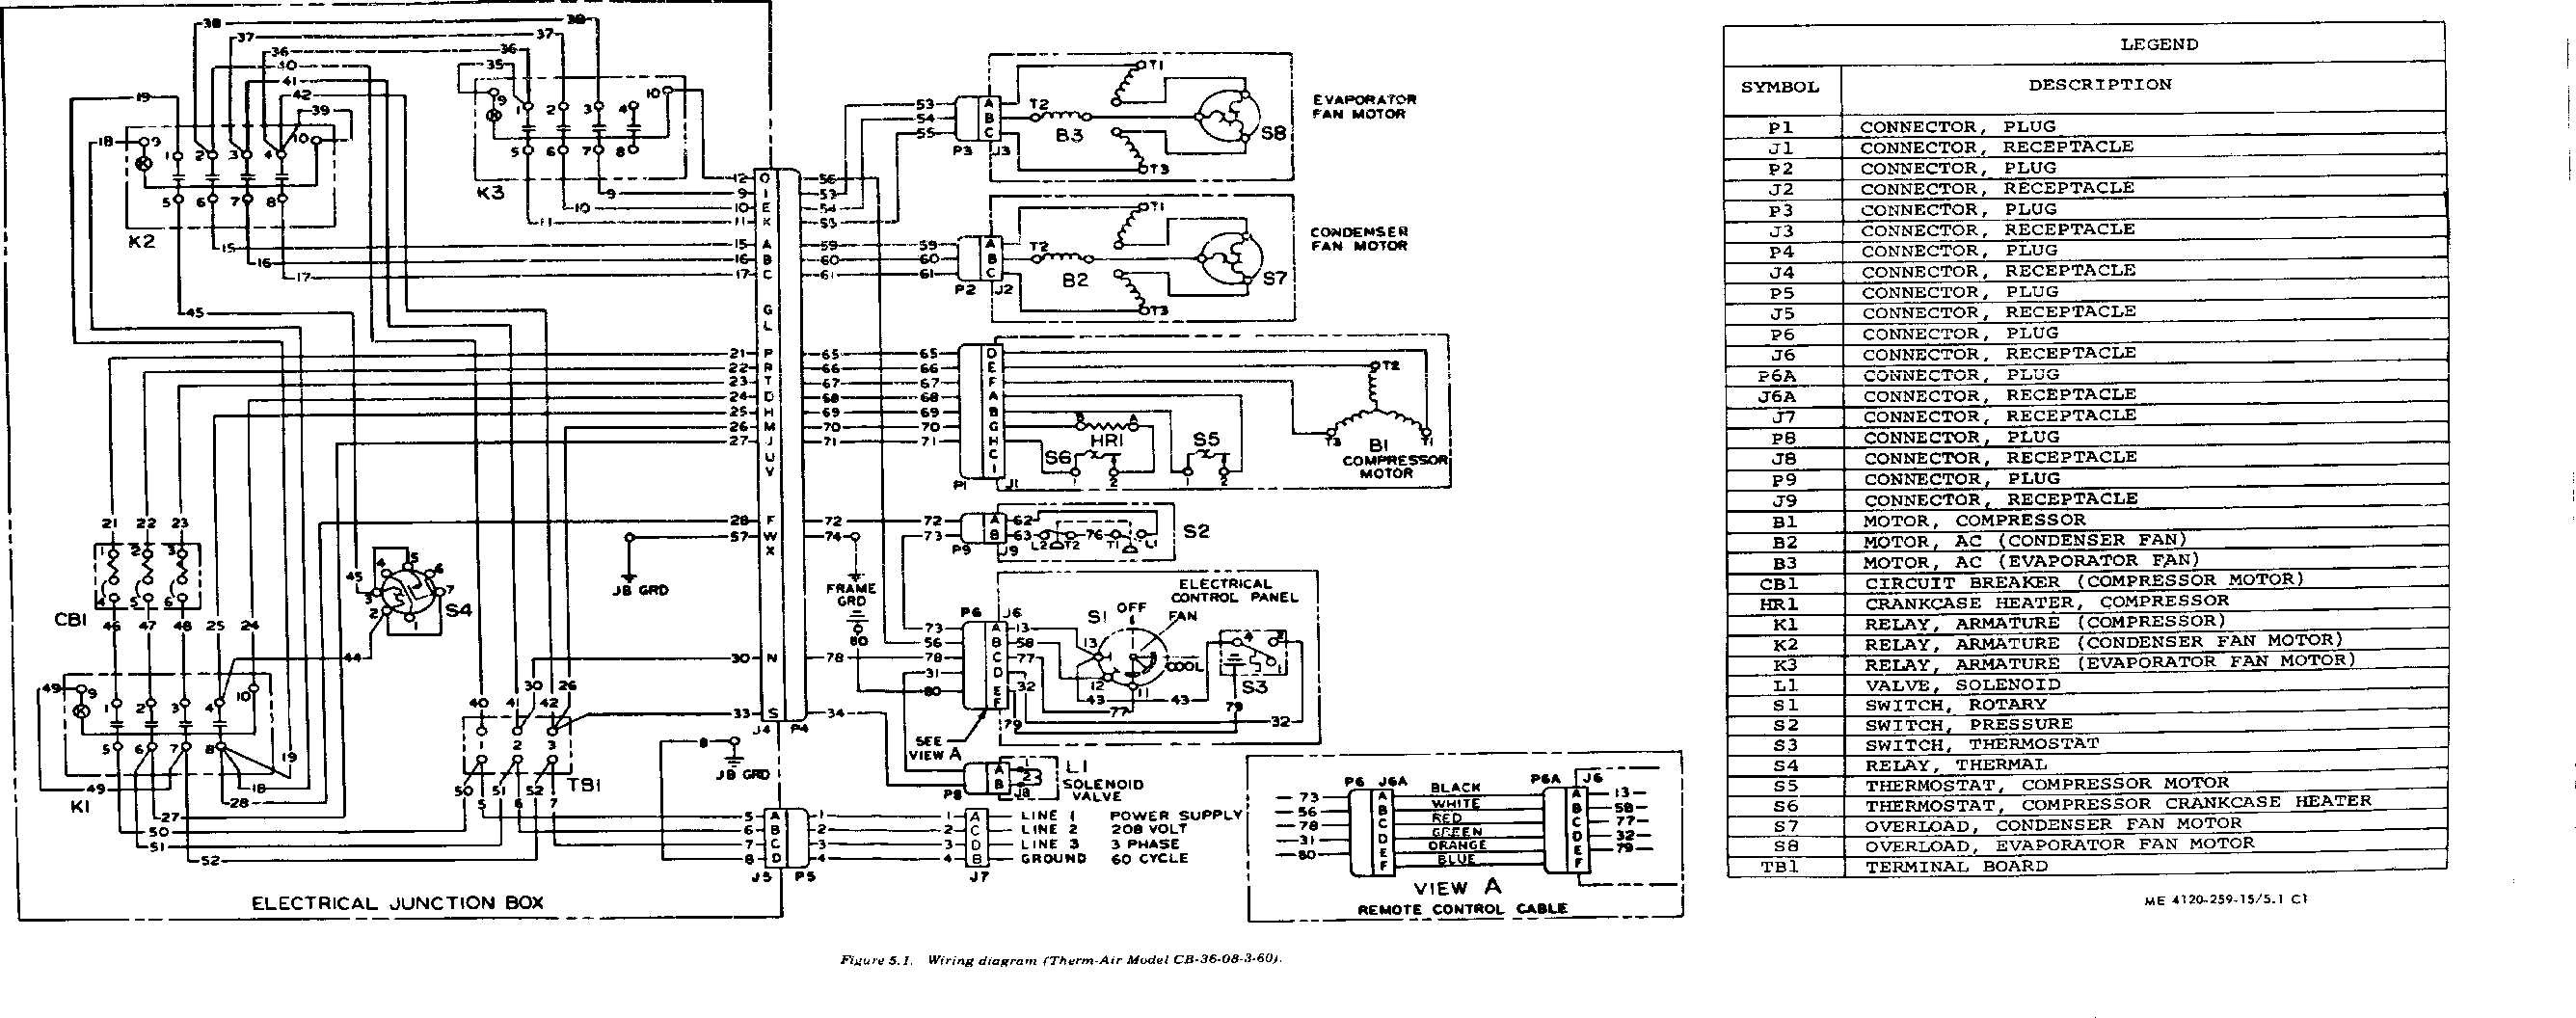 payne package unit wiring diagram Collection-Ac Tech Wiring Diagram New Payne Heat Pump Thermostatng Diagram Package Unit Trane Wiring 14-n